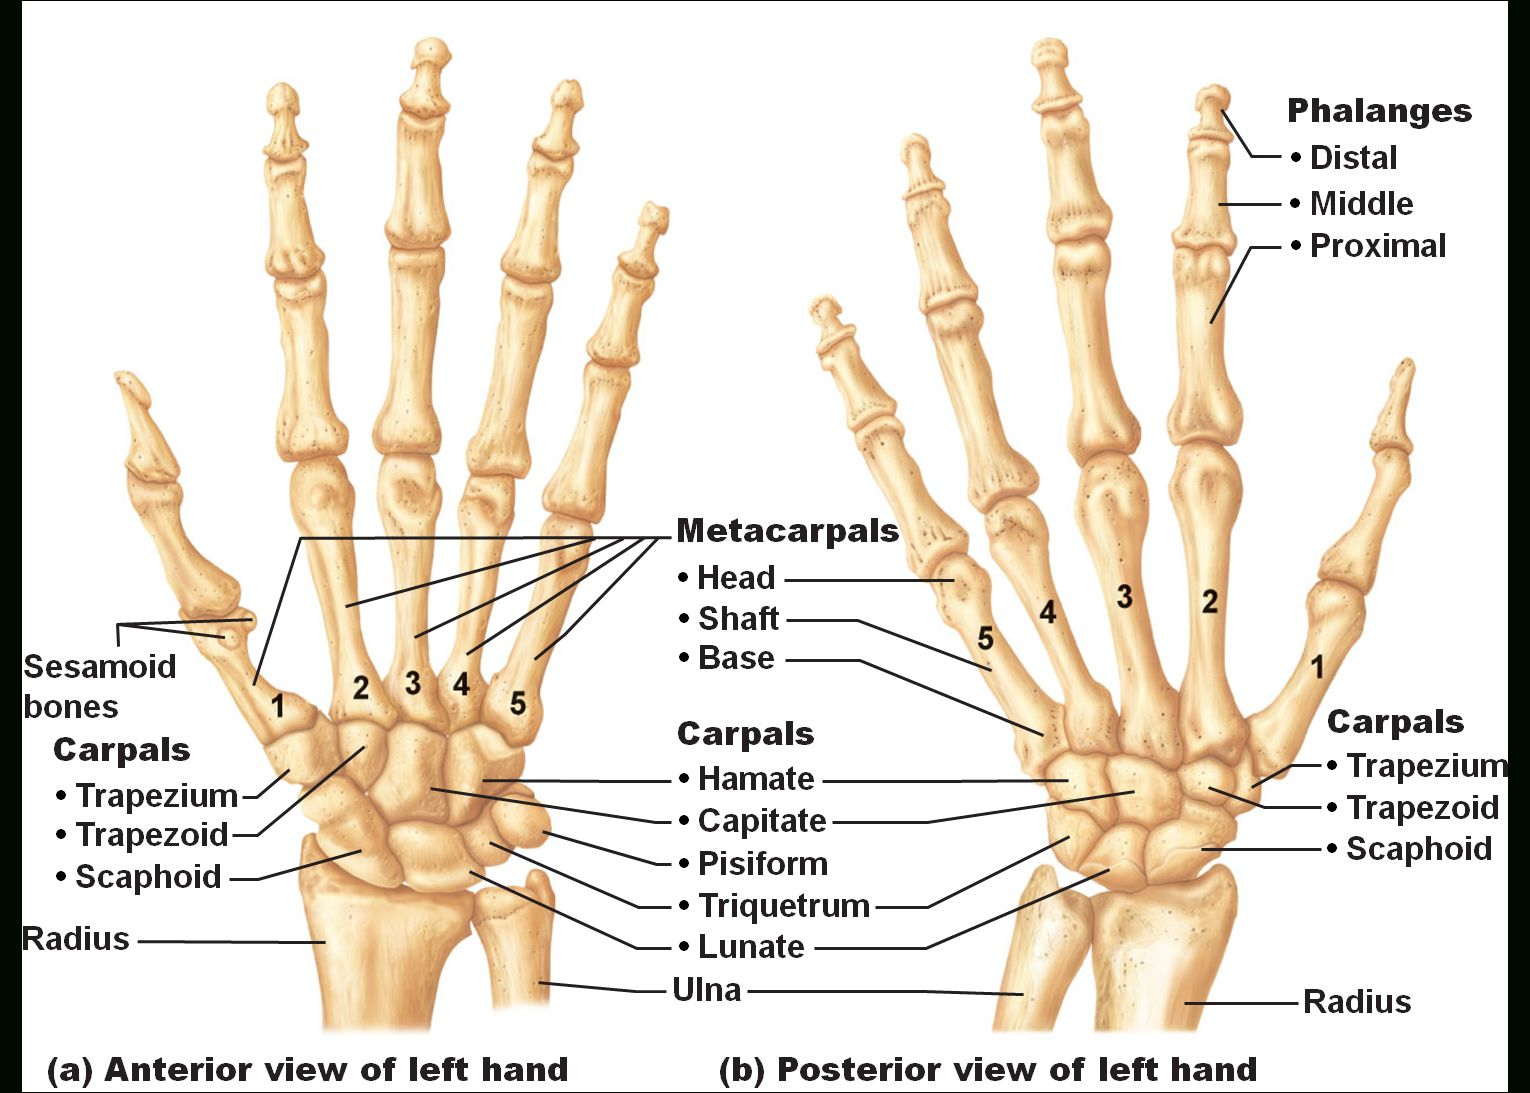 anatomy of the wrist bones human anatomy wrist bone anatomy hand, Human Body